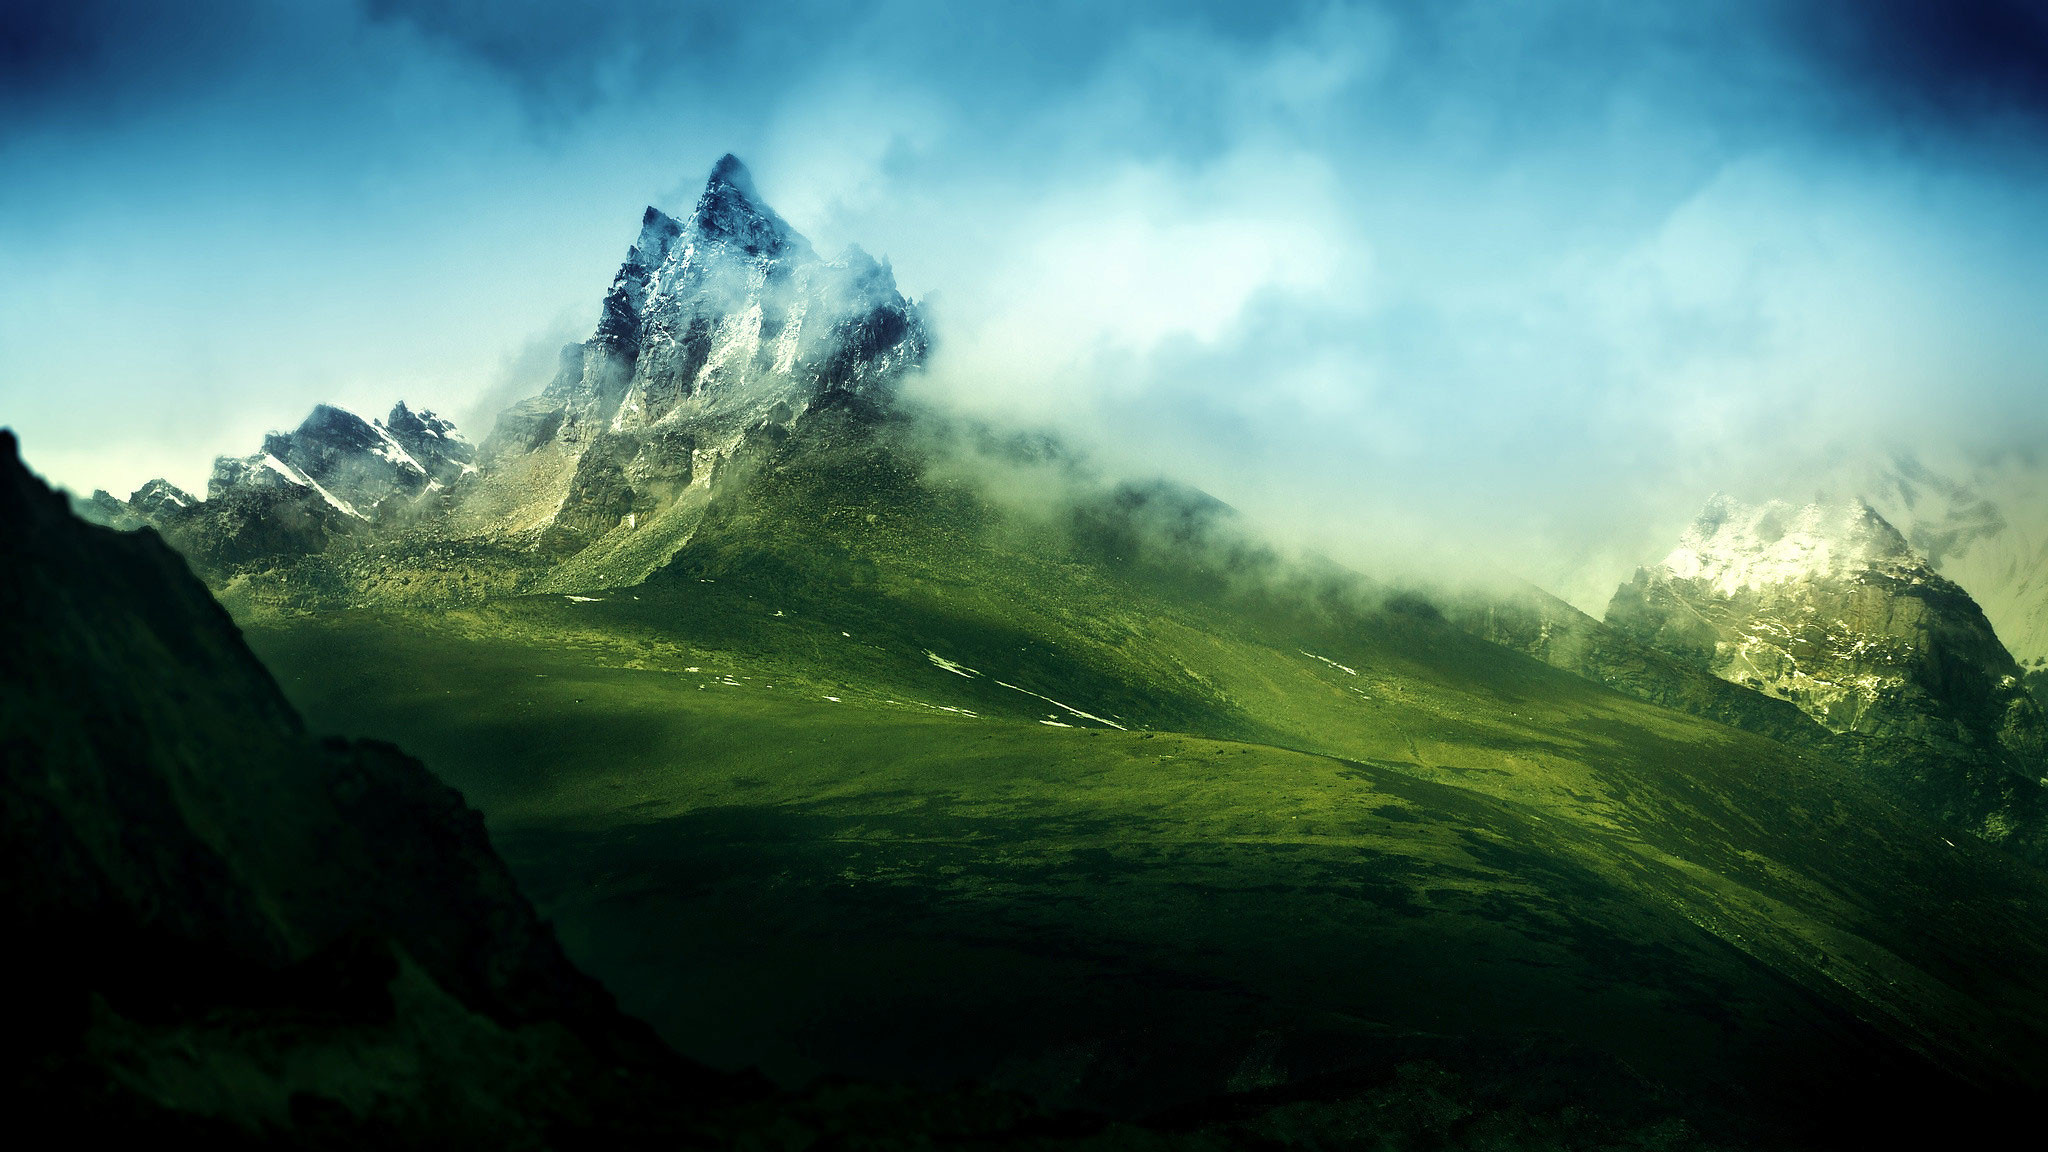 Wallpapers HD Backgrounds Wallpaper 2048×1152 2048 X 1152 Wallpapers (39  Wallpapers) |